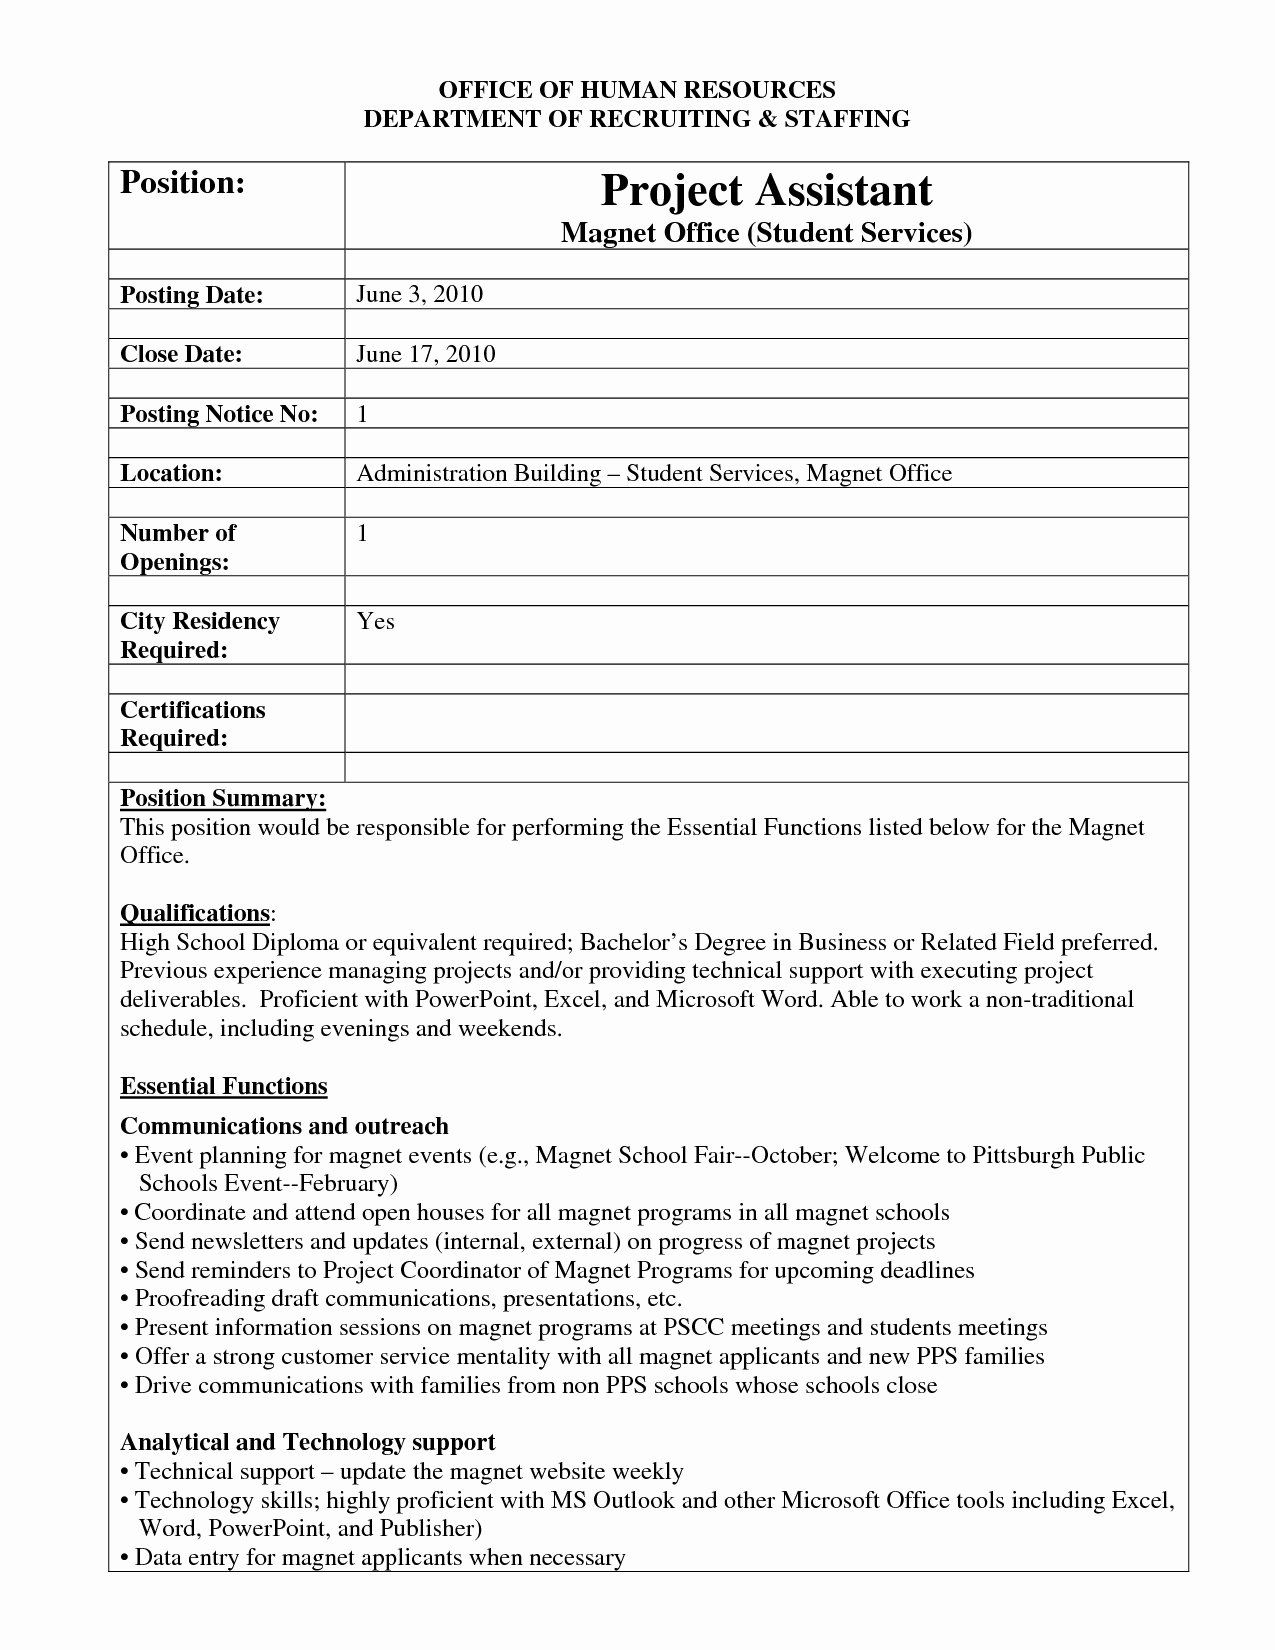 Job Posting Template Word New Best S Of Internal Job Posting Template Word Resume